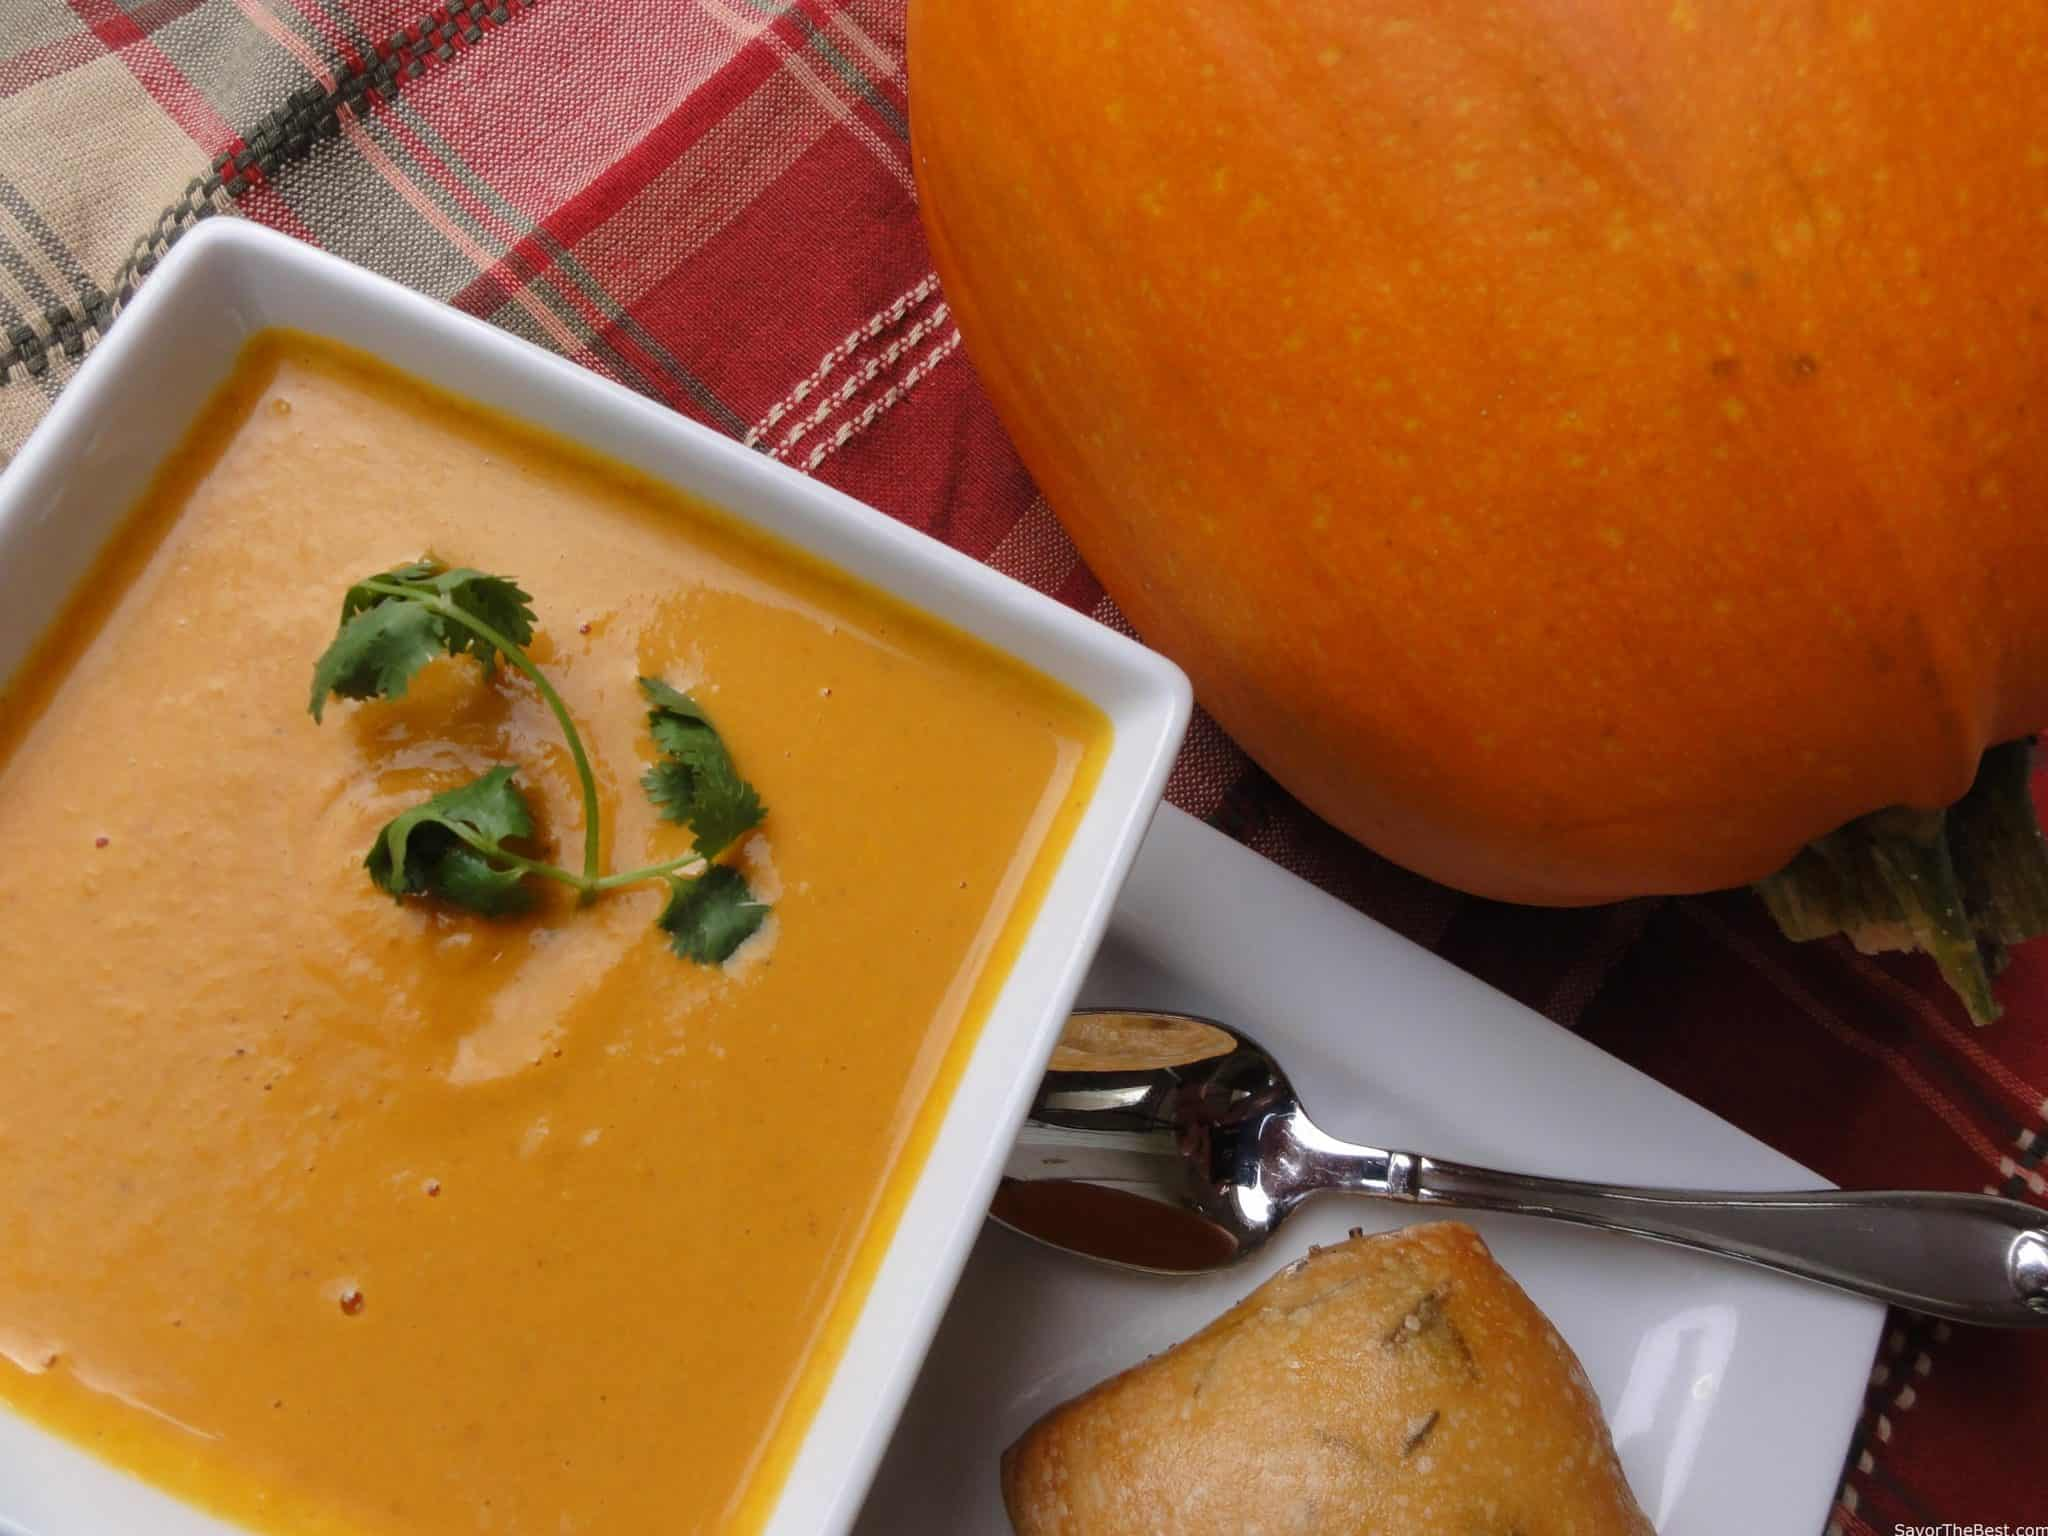 Thai pumpkin soup savor the best video thai pumpkin soup adapted from my vitamix whole foods recipe book forumfinder Choice Image